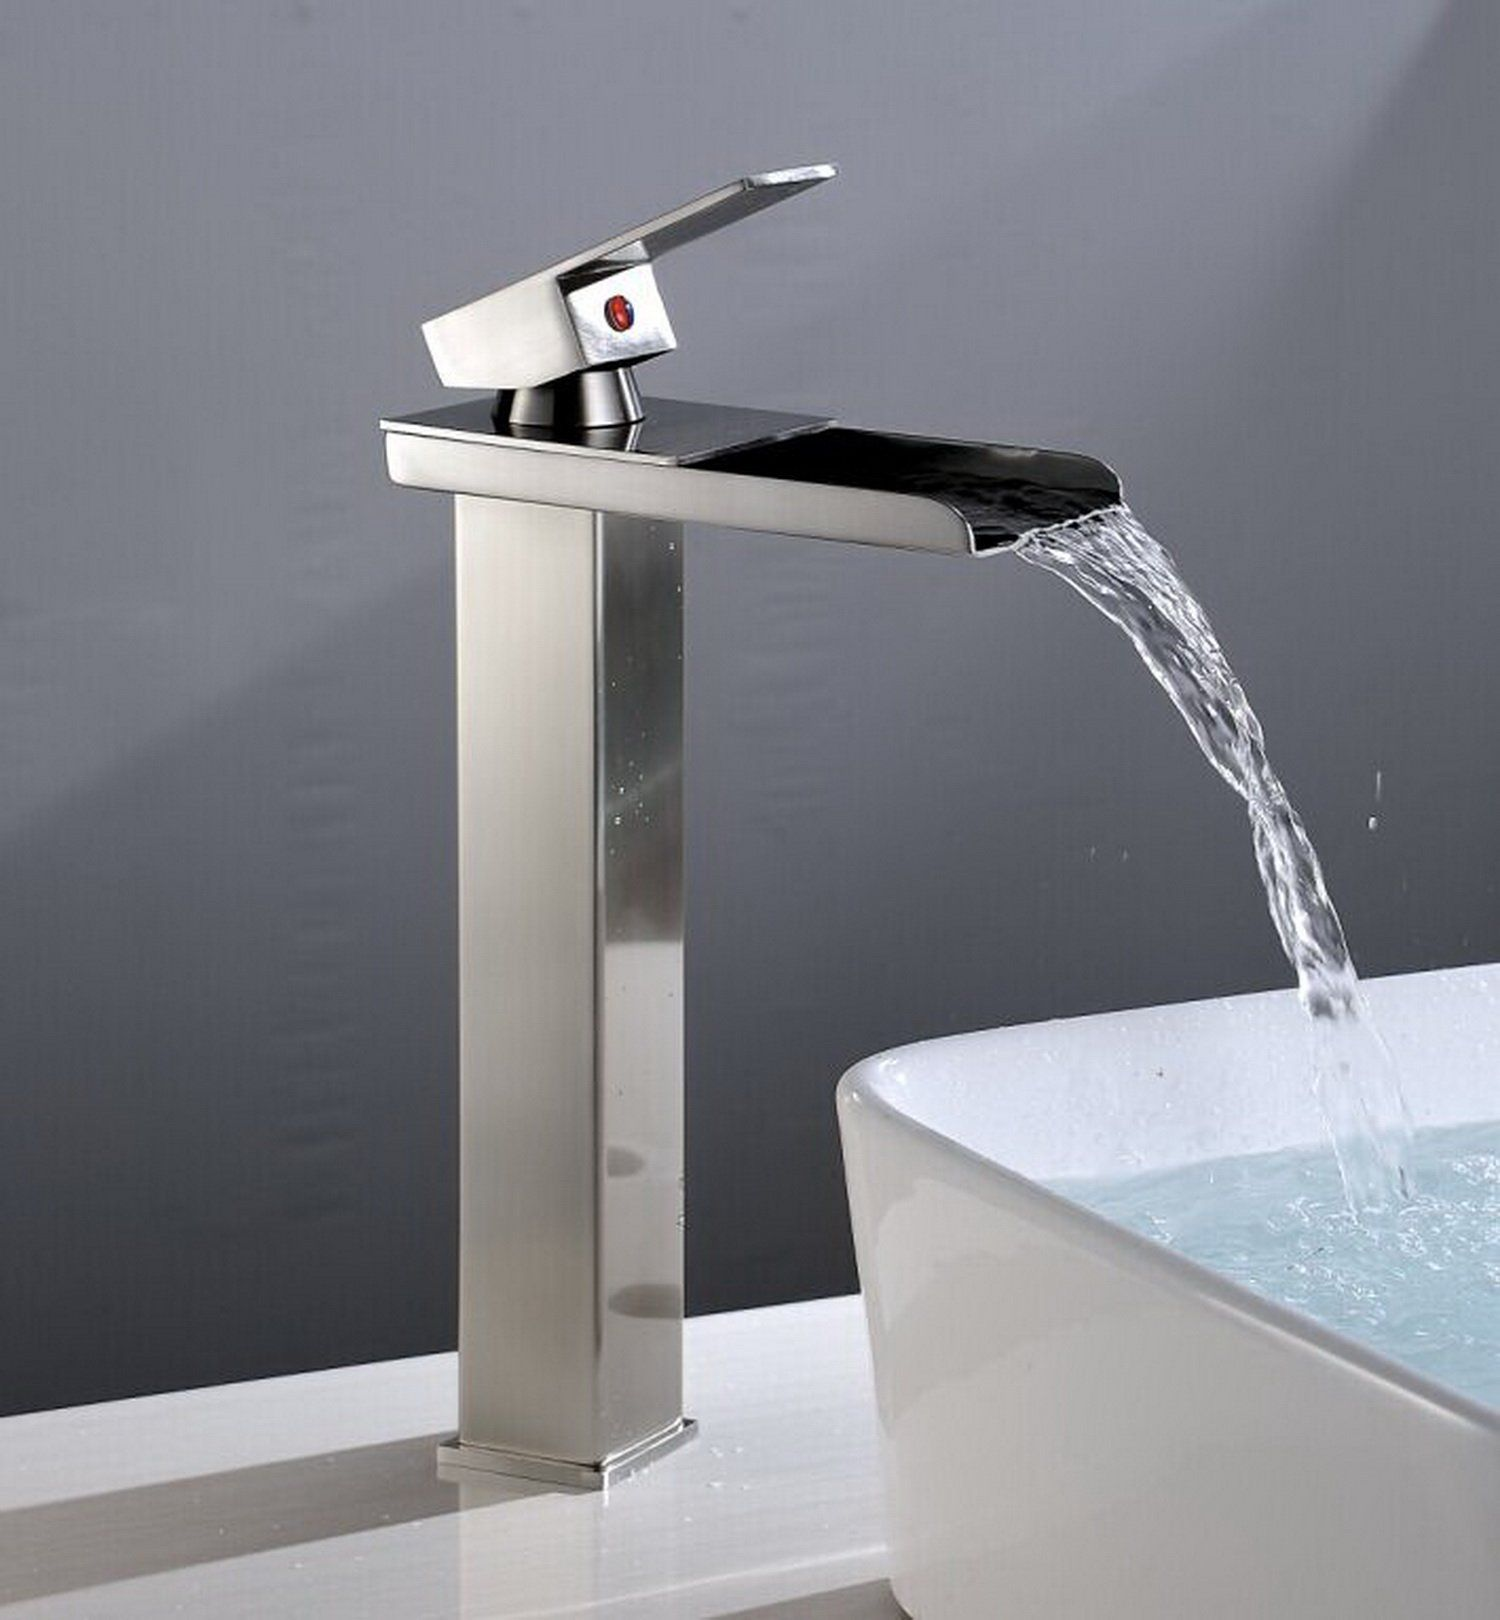 Aquafaucet Tall Nickel Brushed Waterfall Bathroom Sink Vessel ...